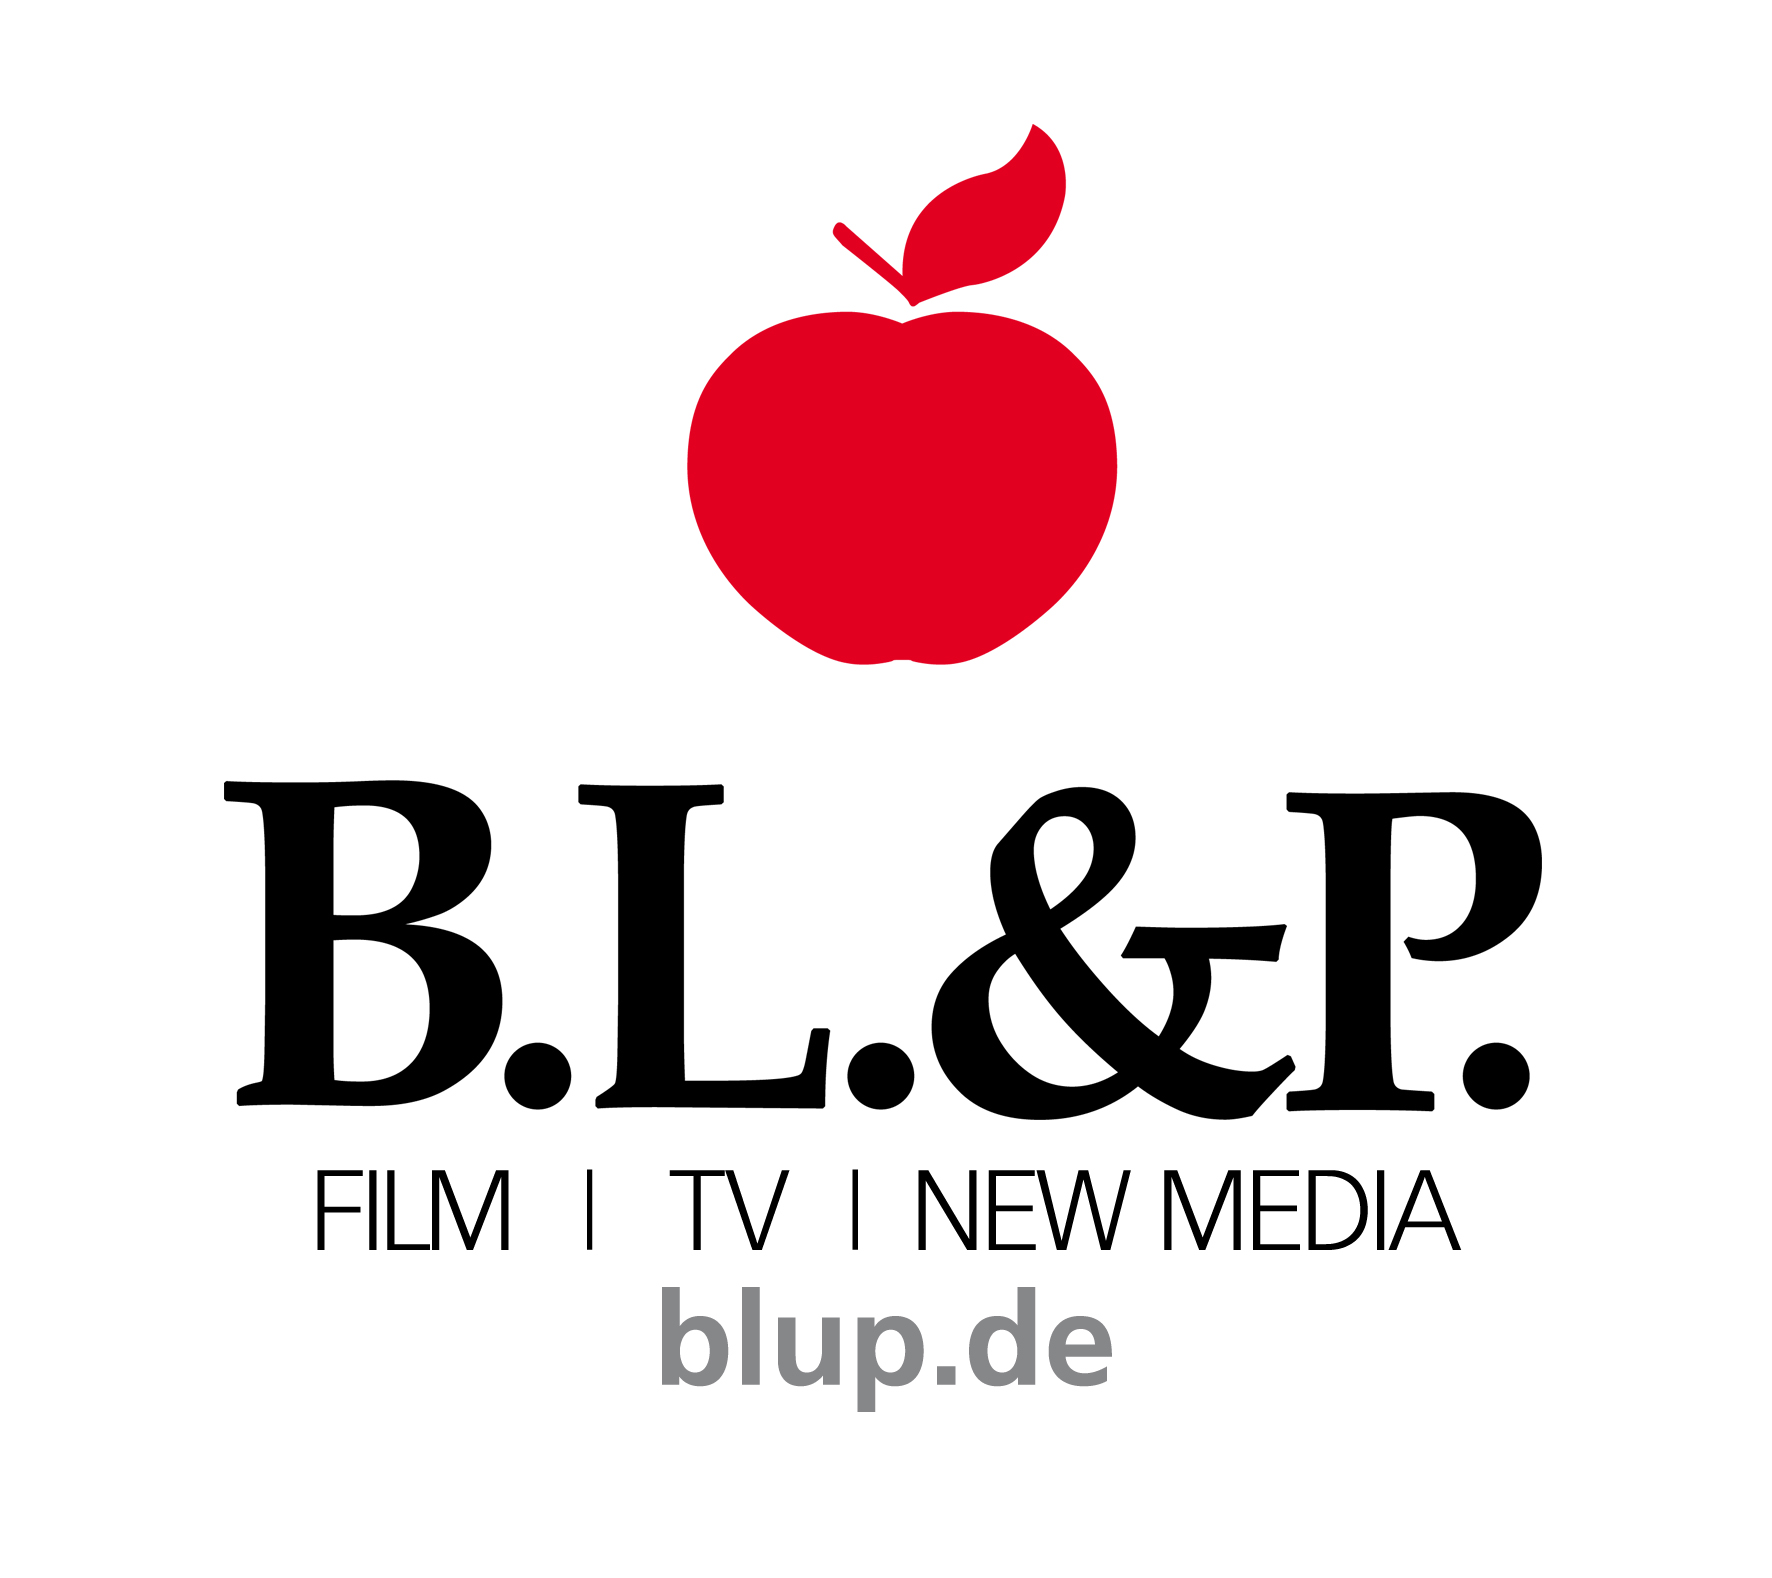 B. L. & P. Film, TV, New Media